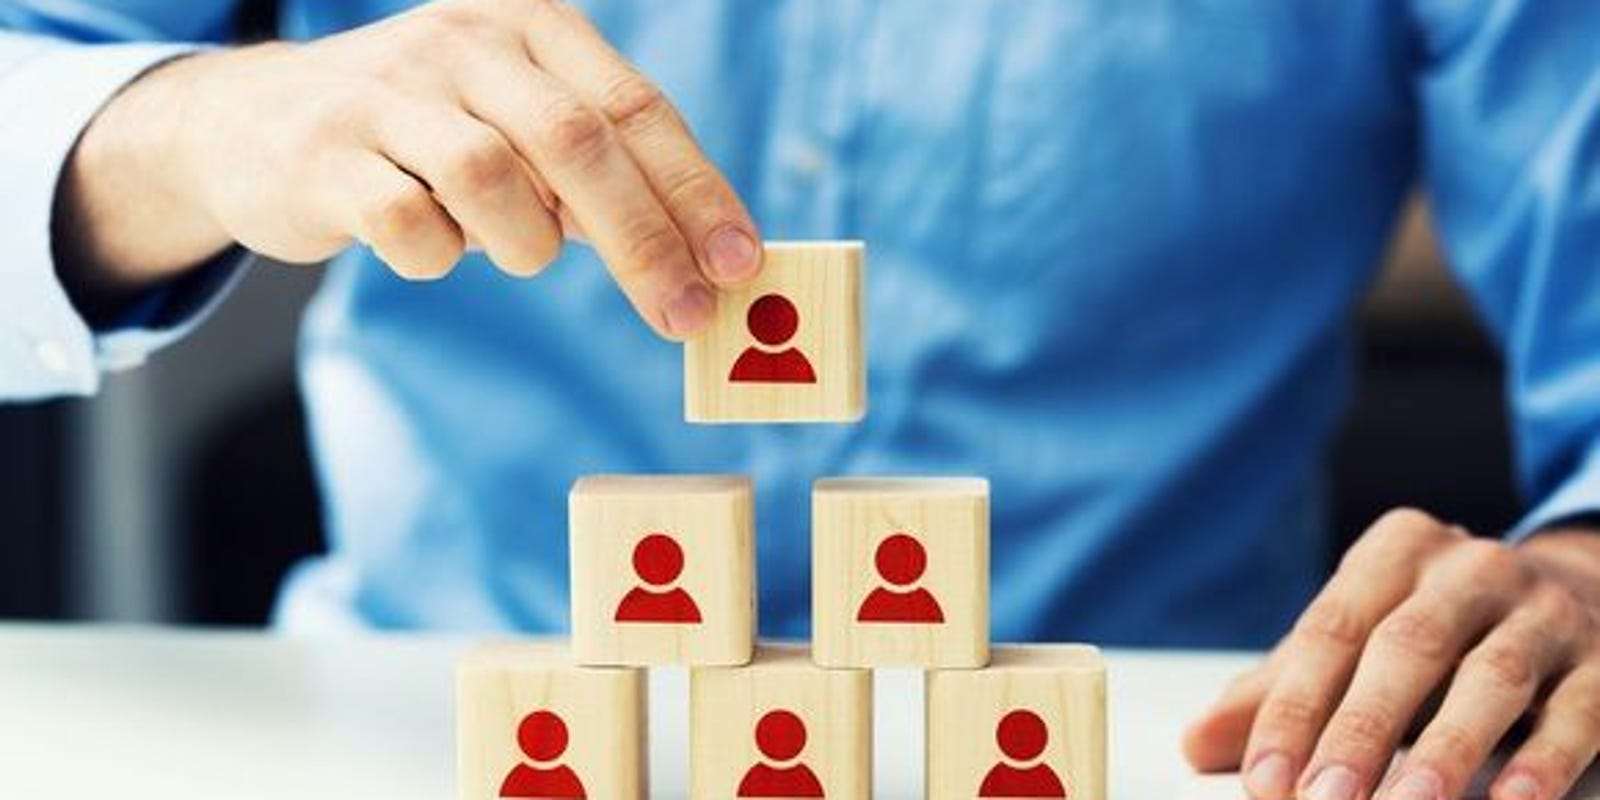 Worker doesn't want to be a part of his boss's pyramid scheme: Ask HR